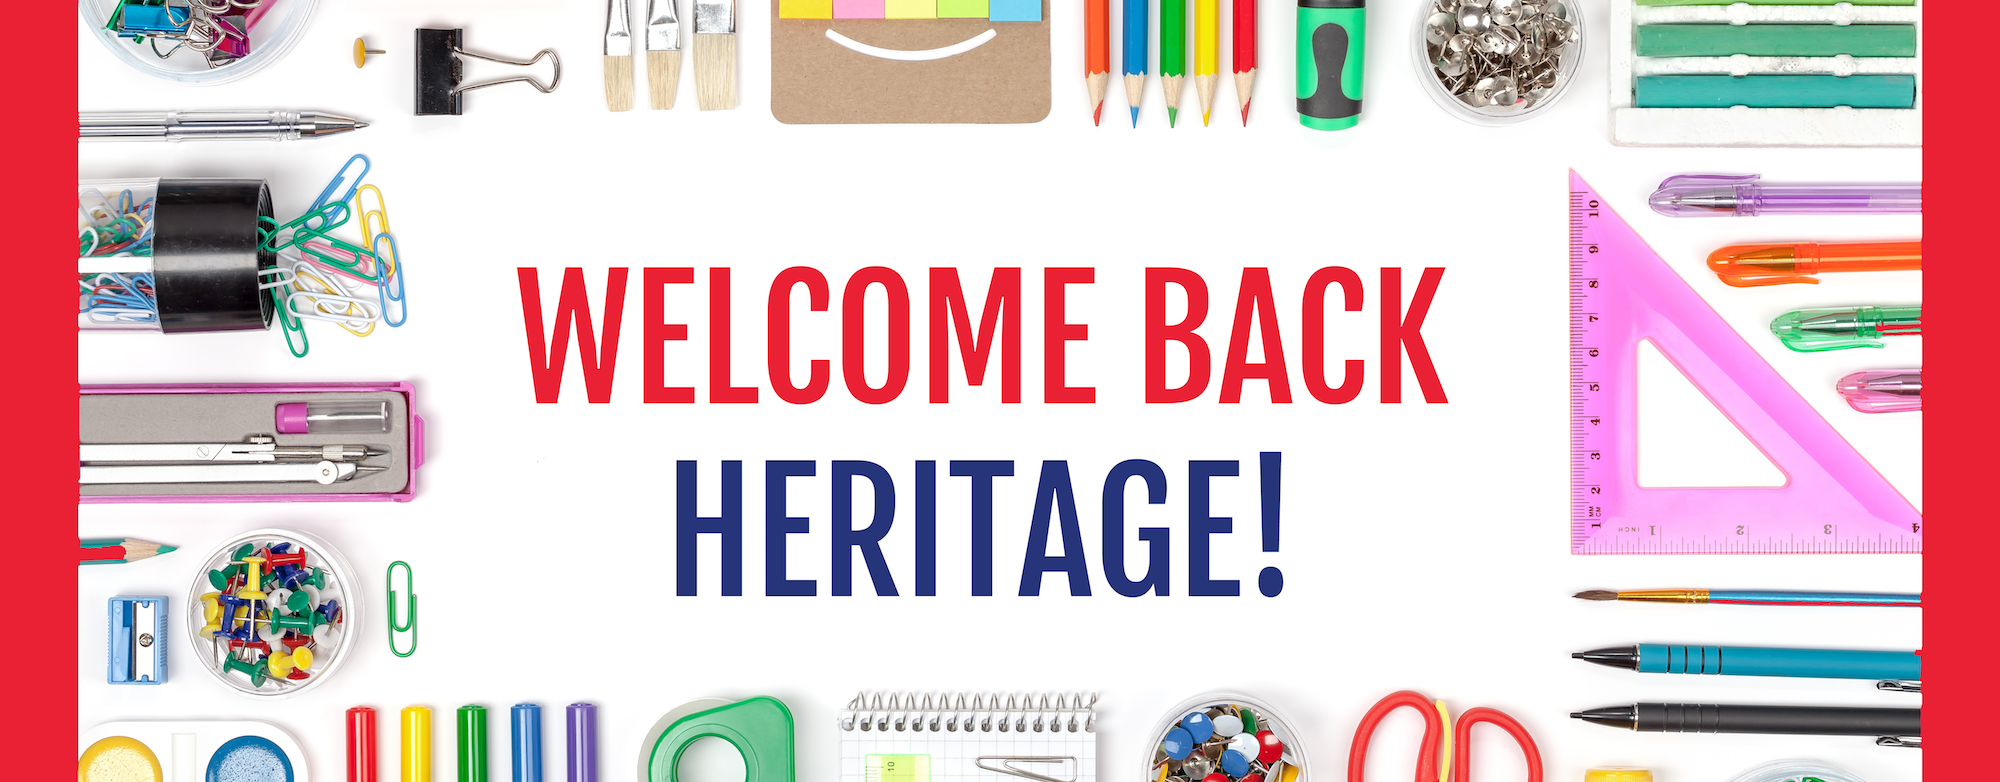 Welcome Back Heritage